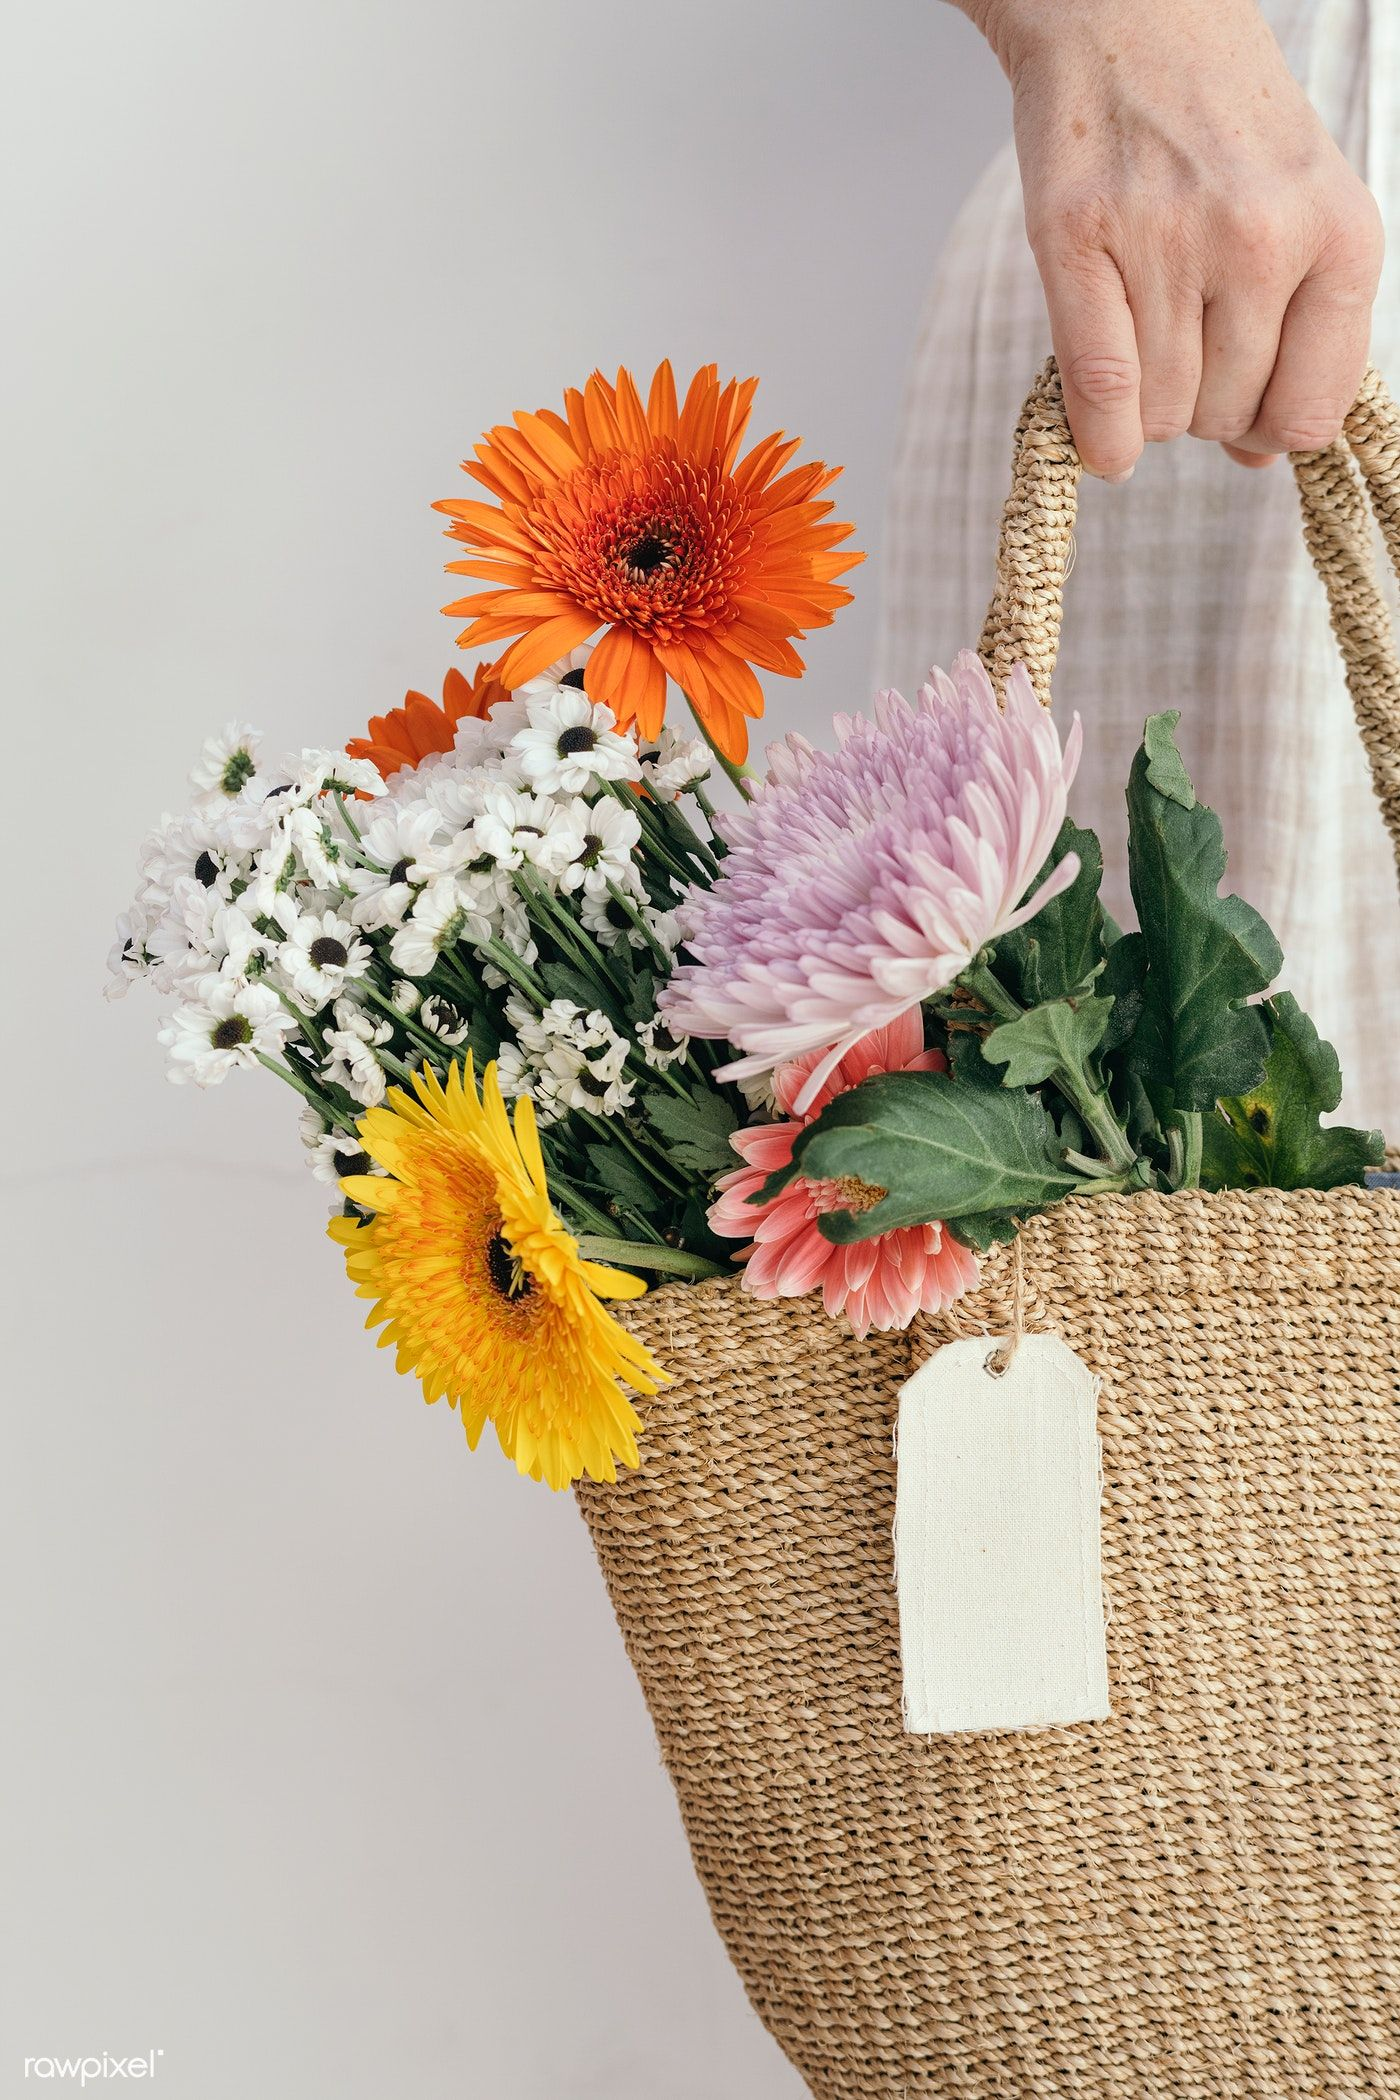 Girl Carrying A Bouquet In Her Bag Premium Image By Rawpixel Com Teddy Rawpixel Tropical Flowers Tropical Flowers Bouquet Gerbera Daisy Bouquet